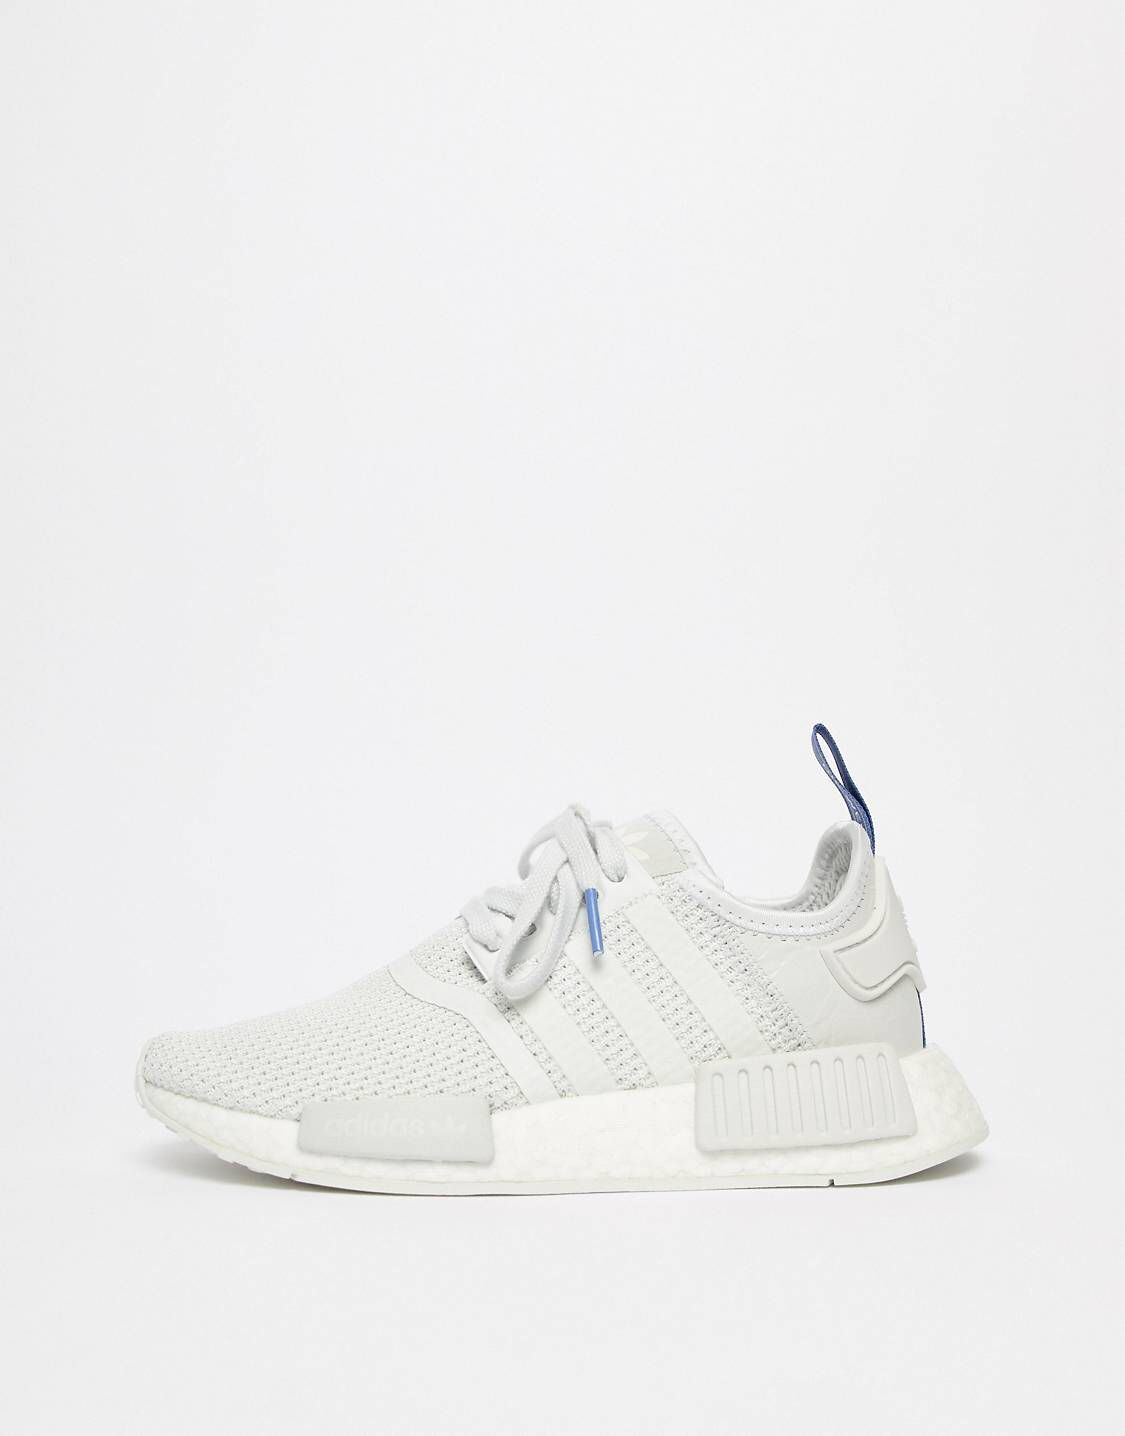 premium selection 4a654 efba7 Белые кроссовки adidas Originals Nmd R1 in 2019 | Shoes ...